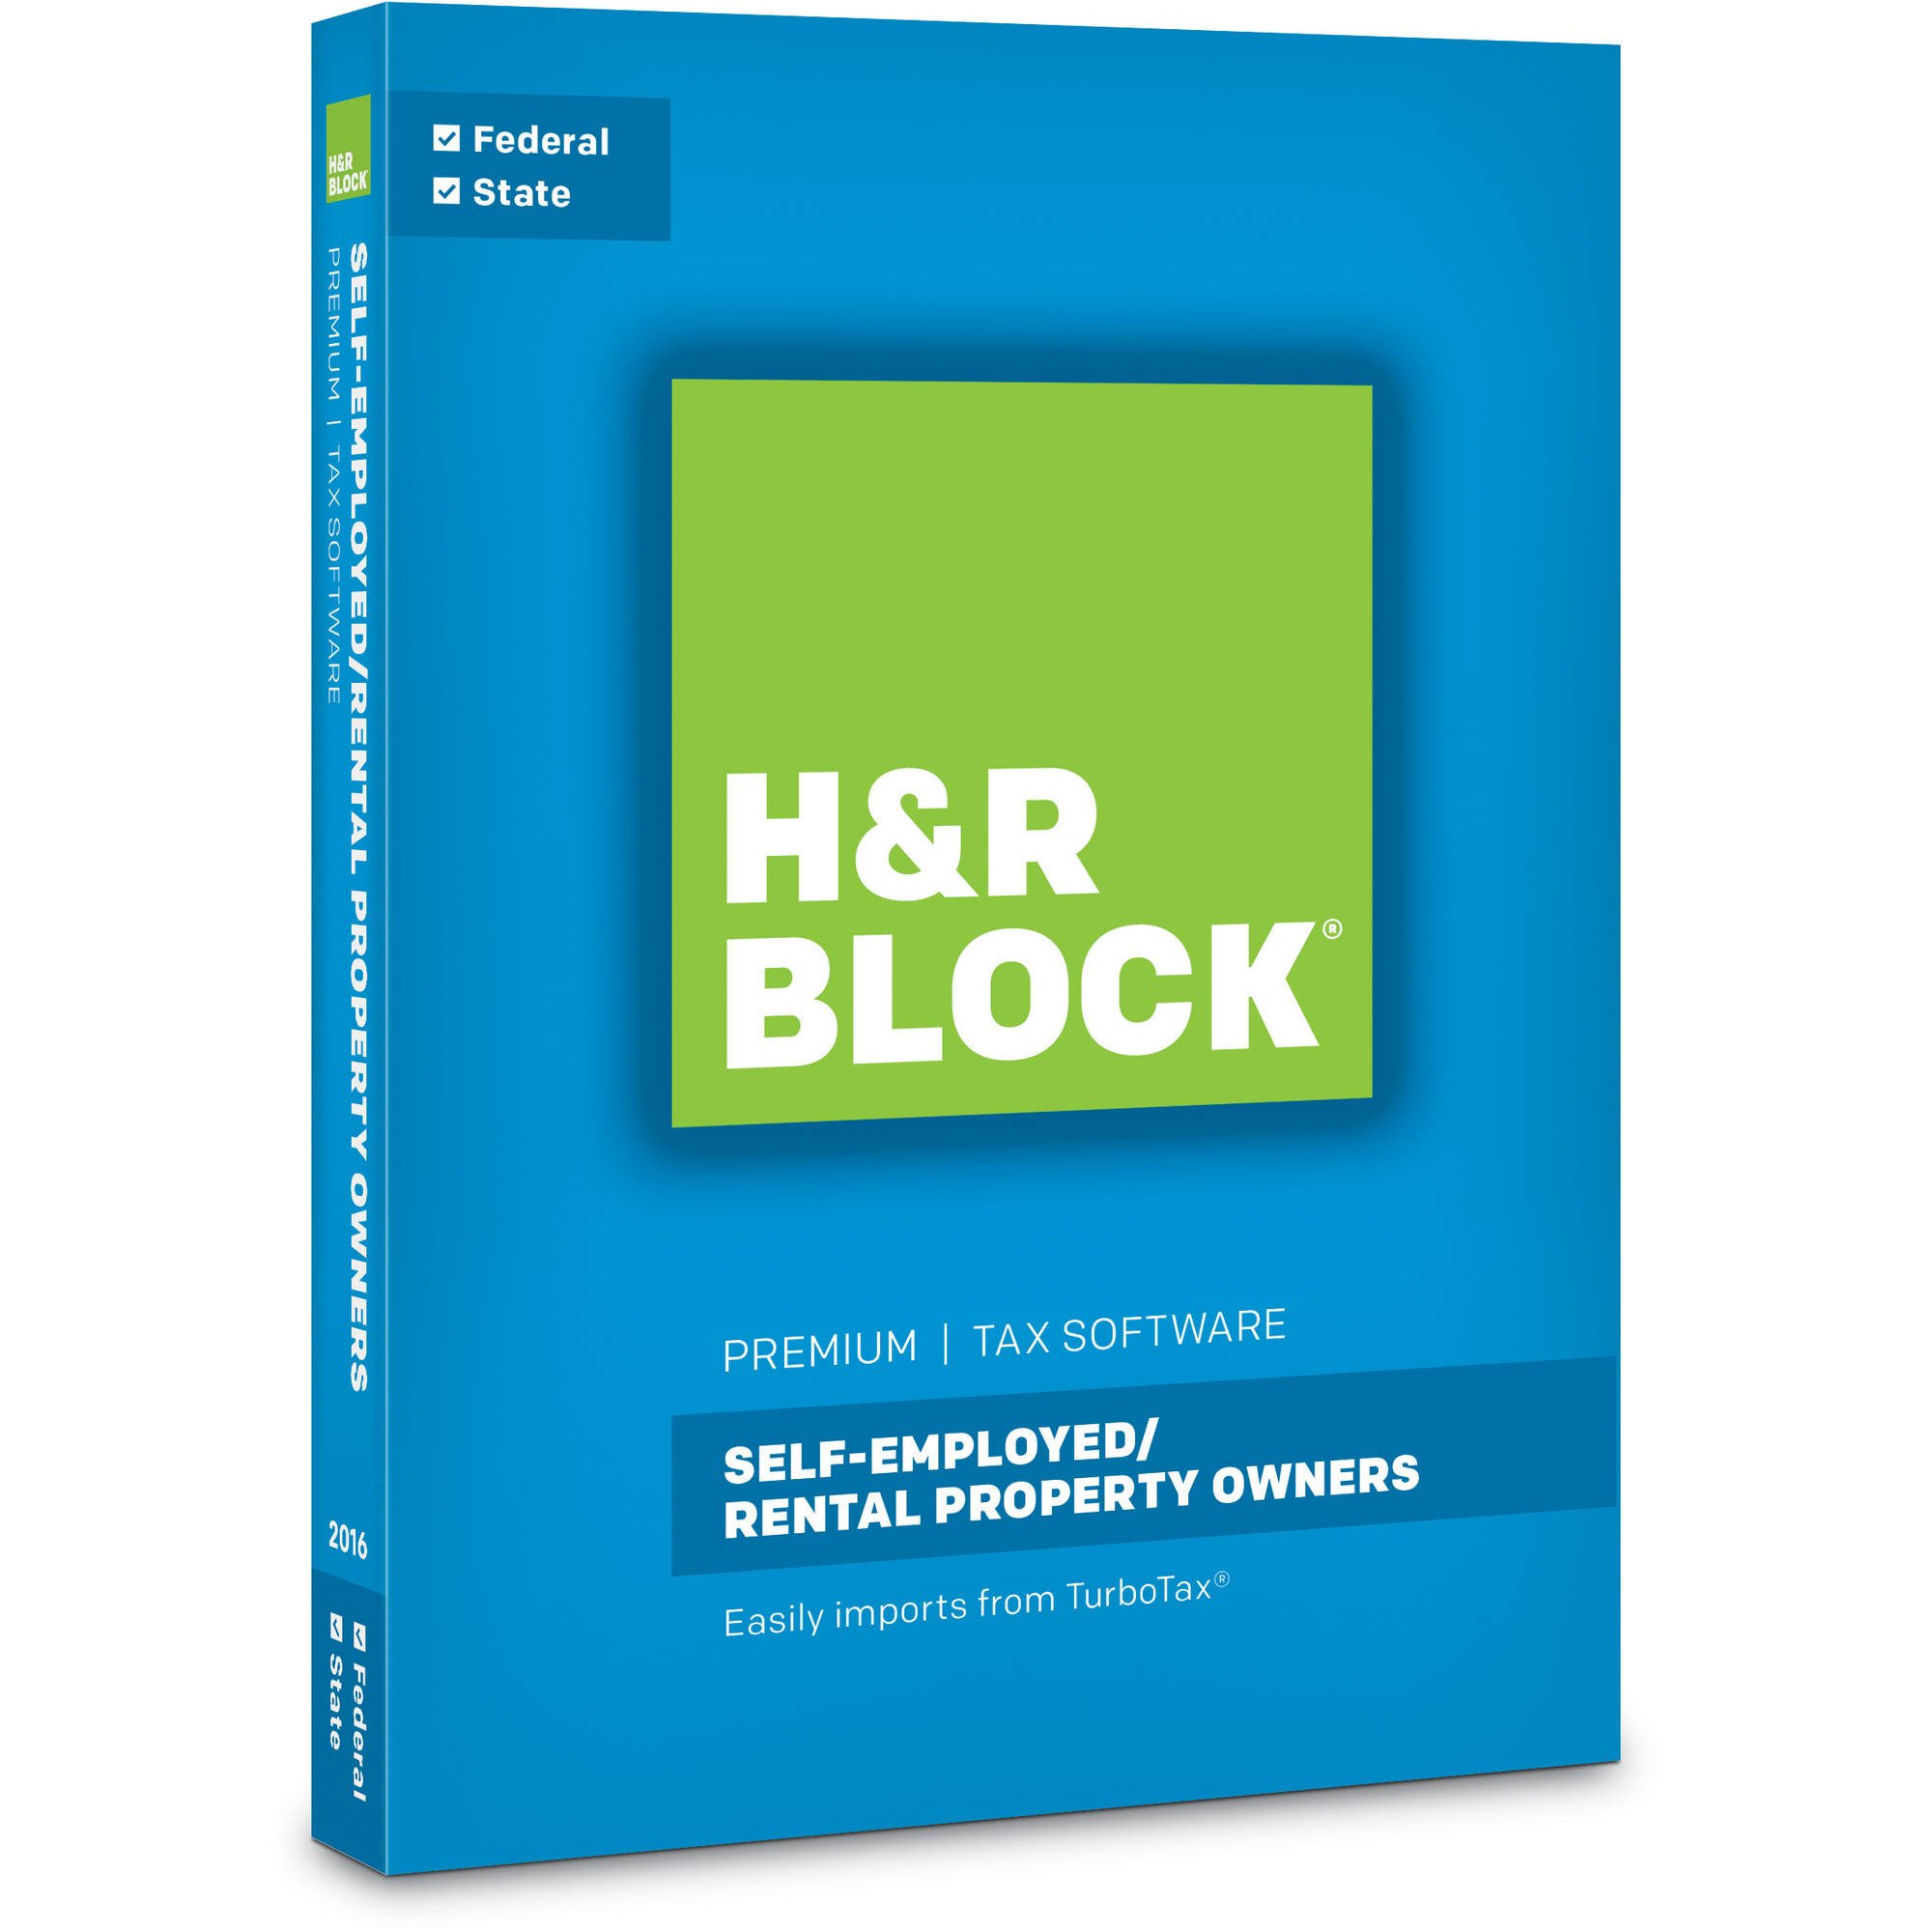 HR Block(R) Premium 2016 Tax Software, For PC/Mac, Traditional Disc by H&R Block